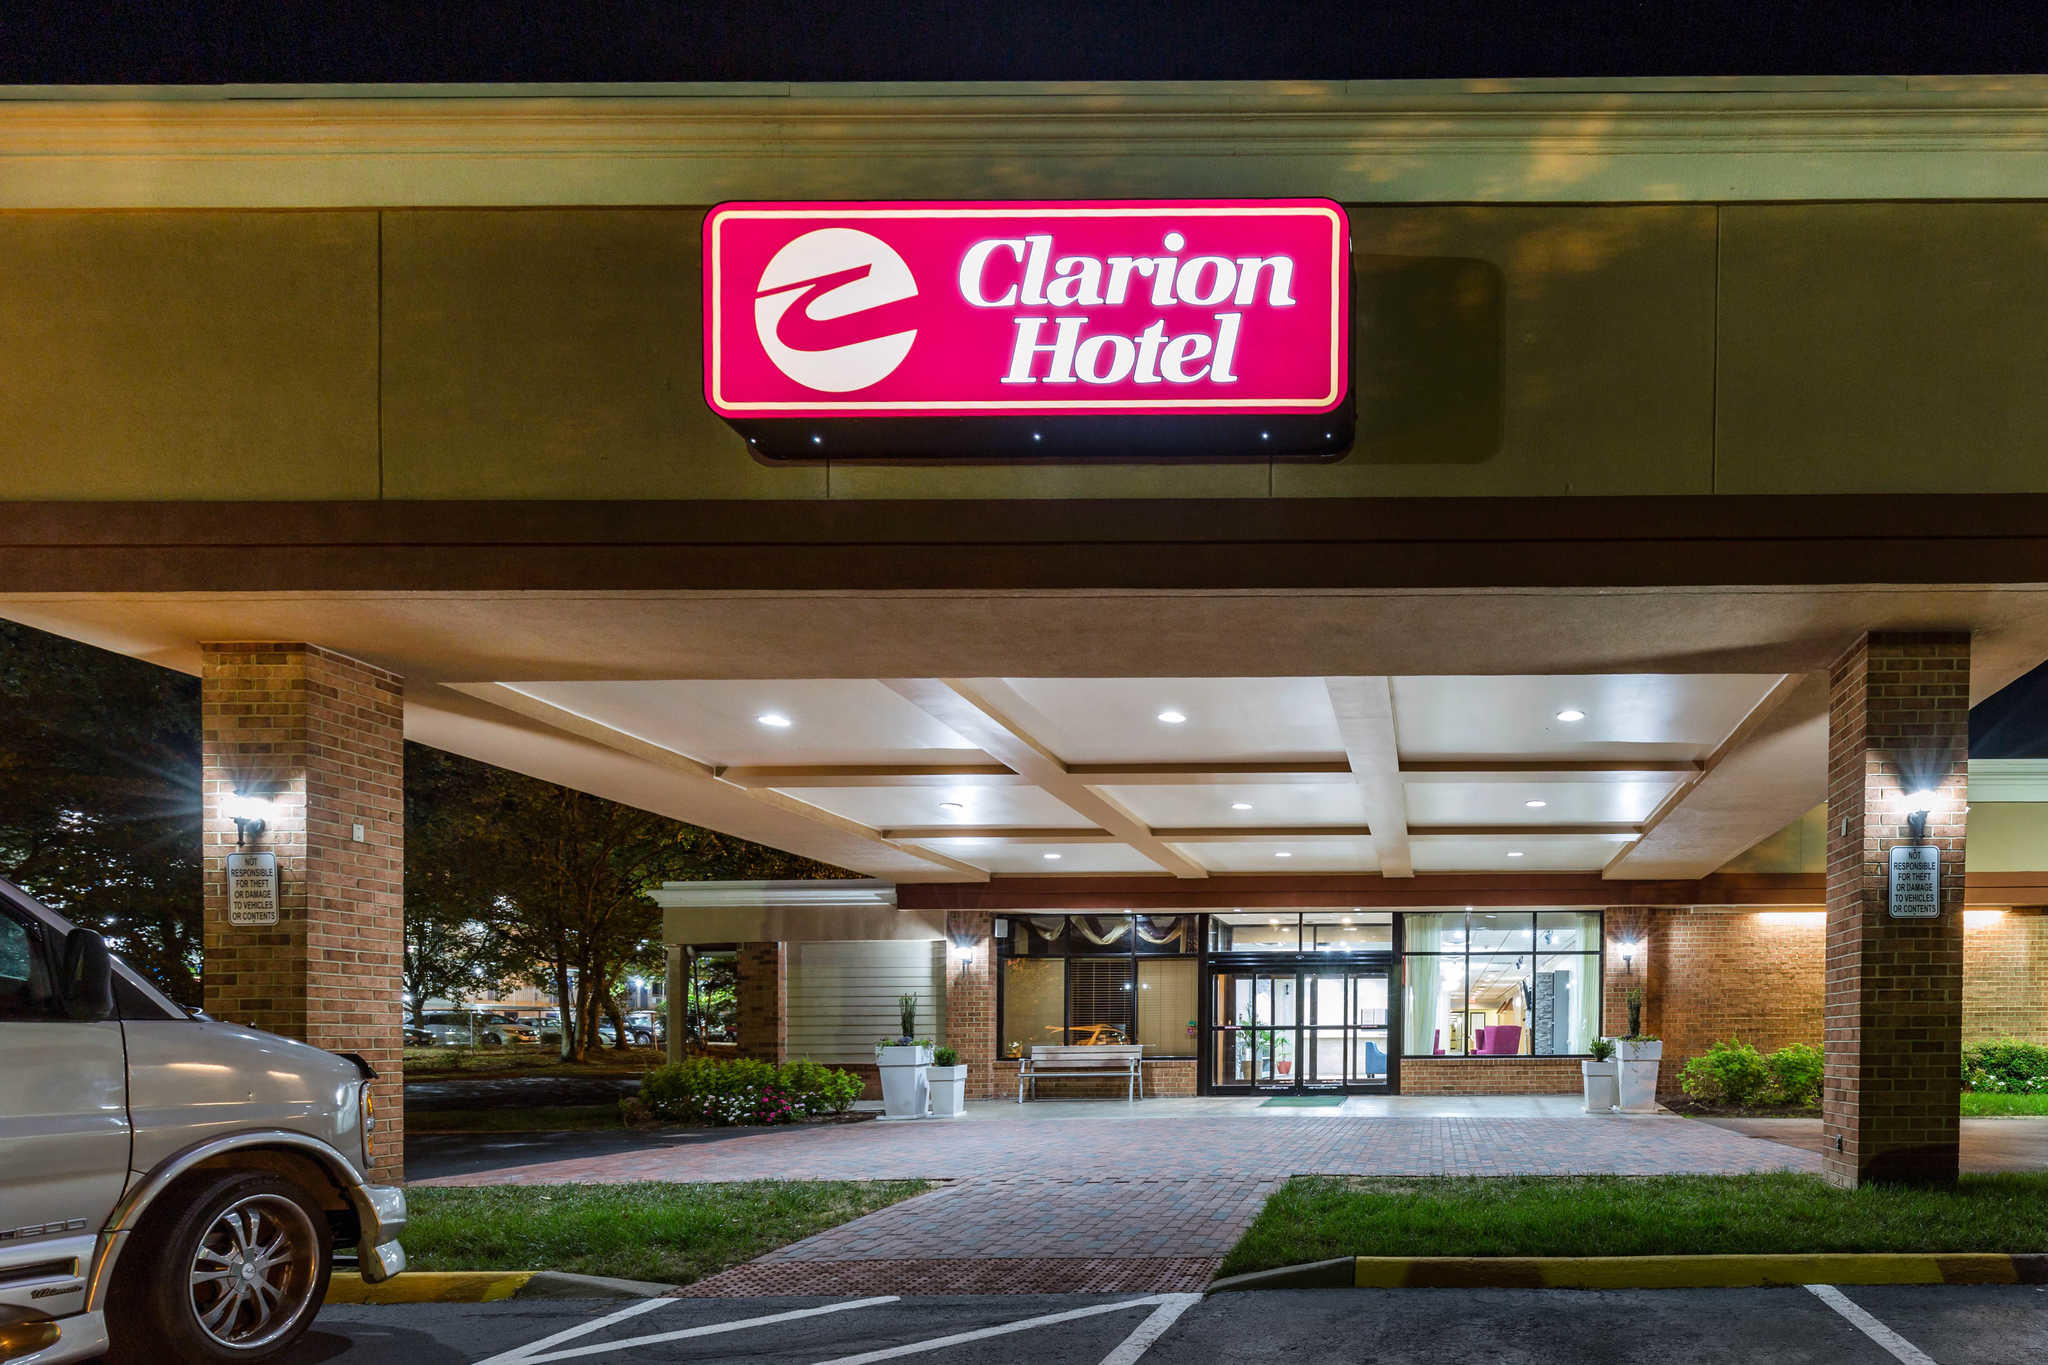 Clarion Hotel in Williamsburg, VA 23185 ... Williamsburg Virginia Chamber Of Commerce Photos